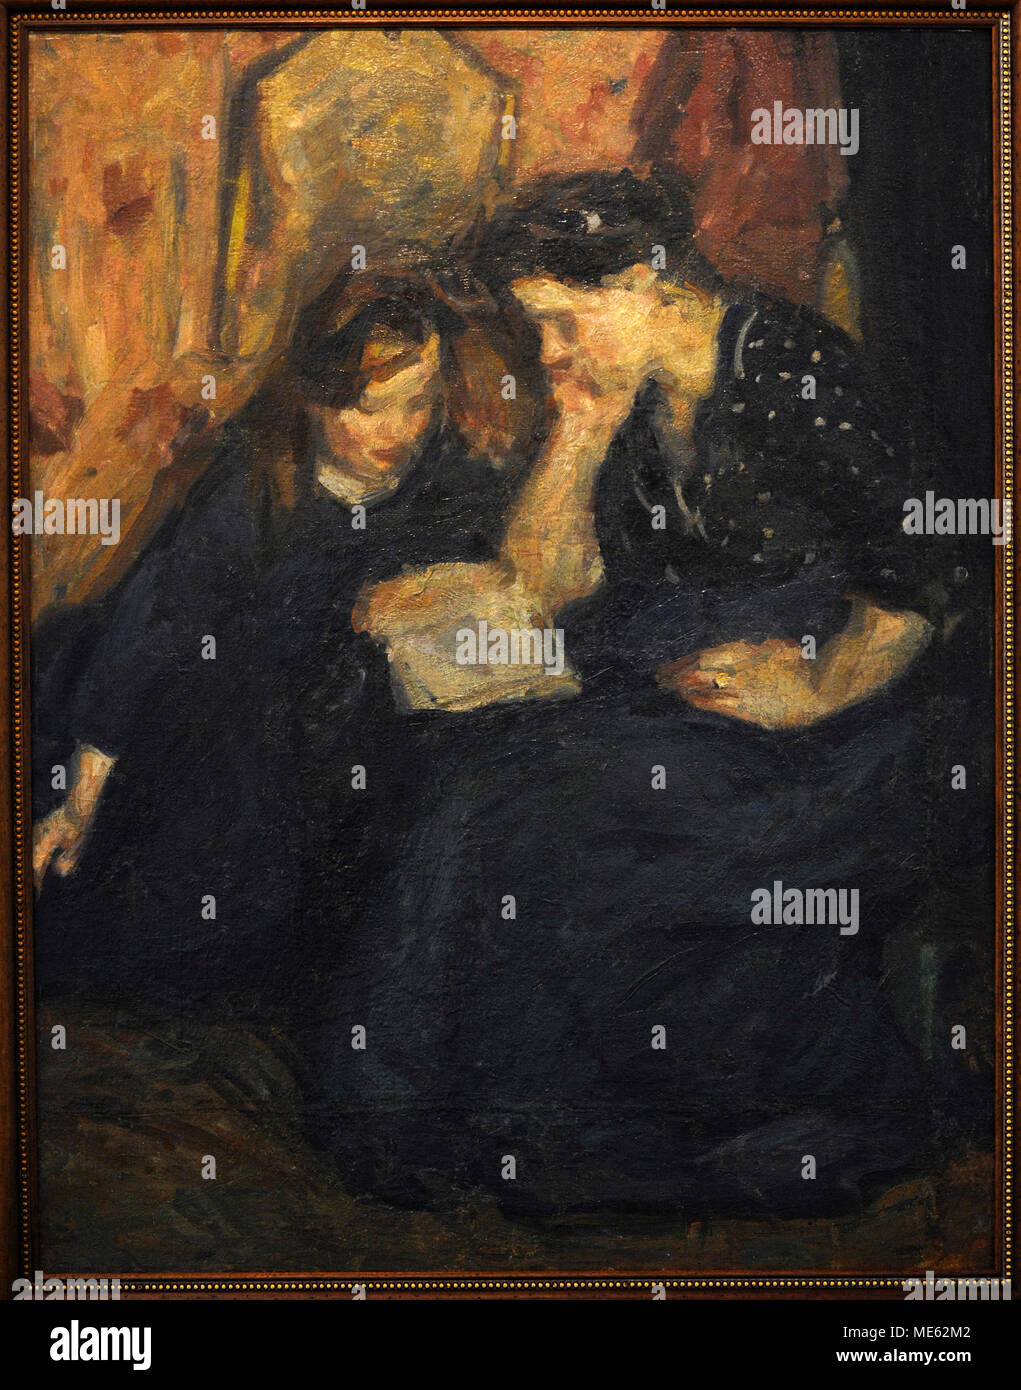 Vladas Eidukevicius (1891-1941). Lithuanian painter. Mother teaching her daughter to read, ca.1918. National Gallery of Art. Vilnius. Lithuania. - Stock Image